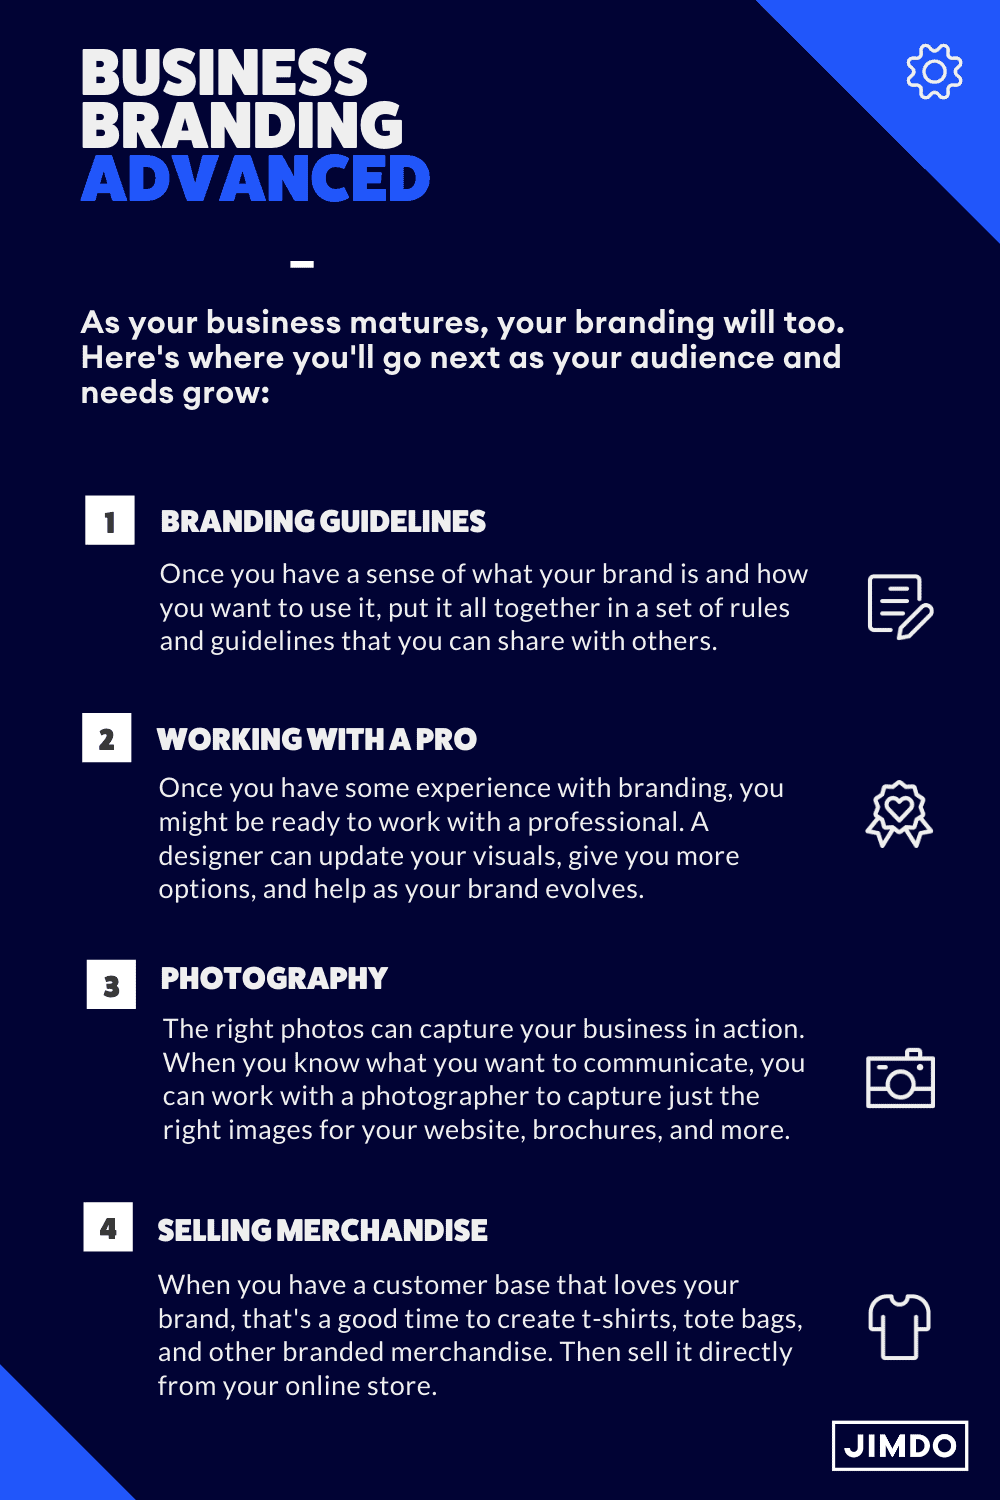 As your business matures, your branding will too. Here's where you'll go next as your audience and needs grow.